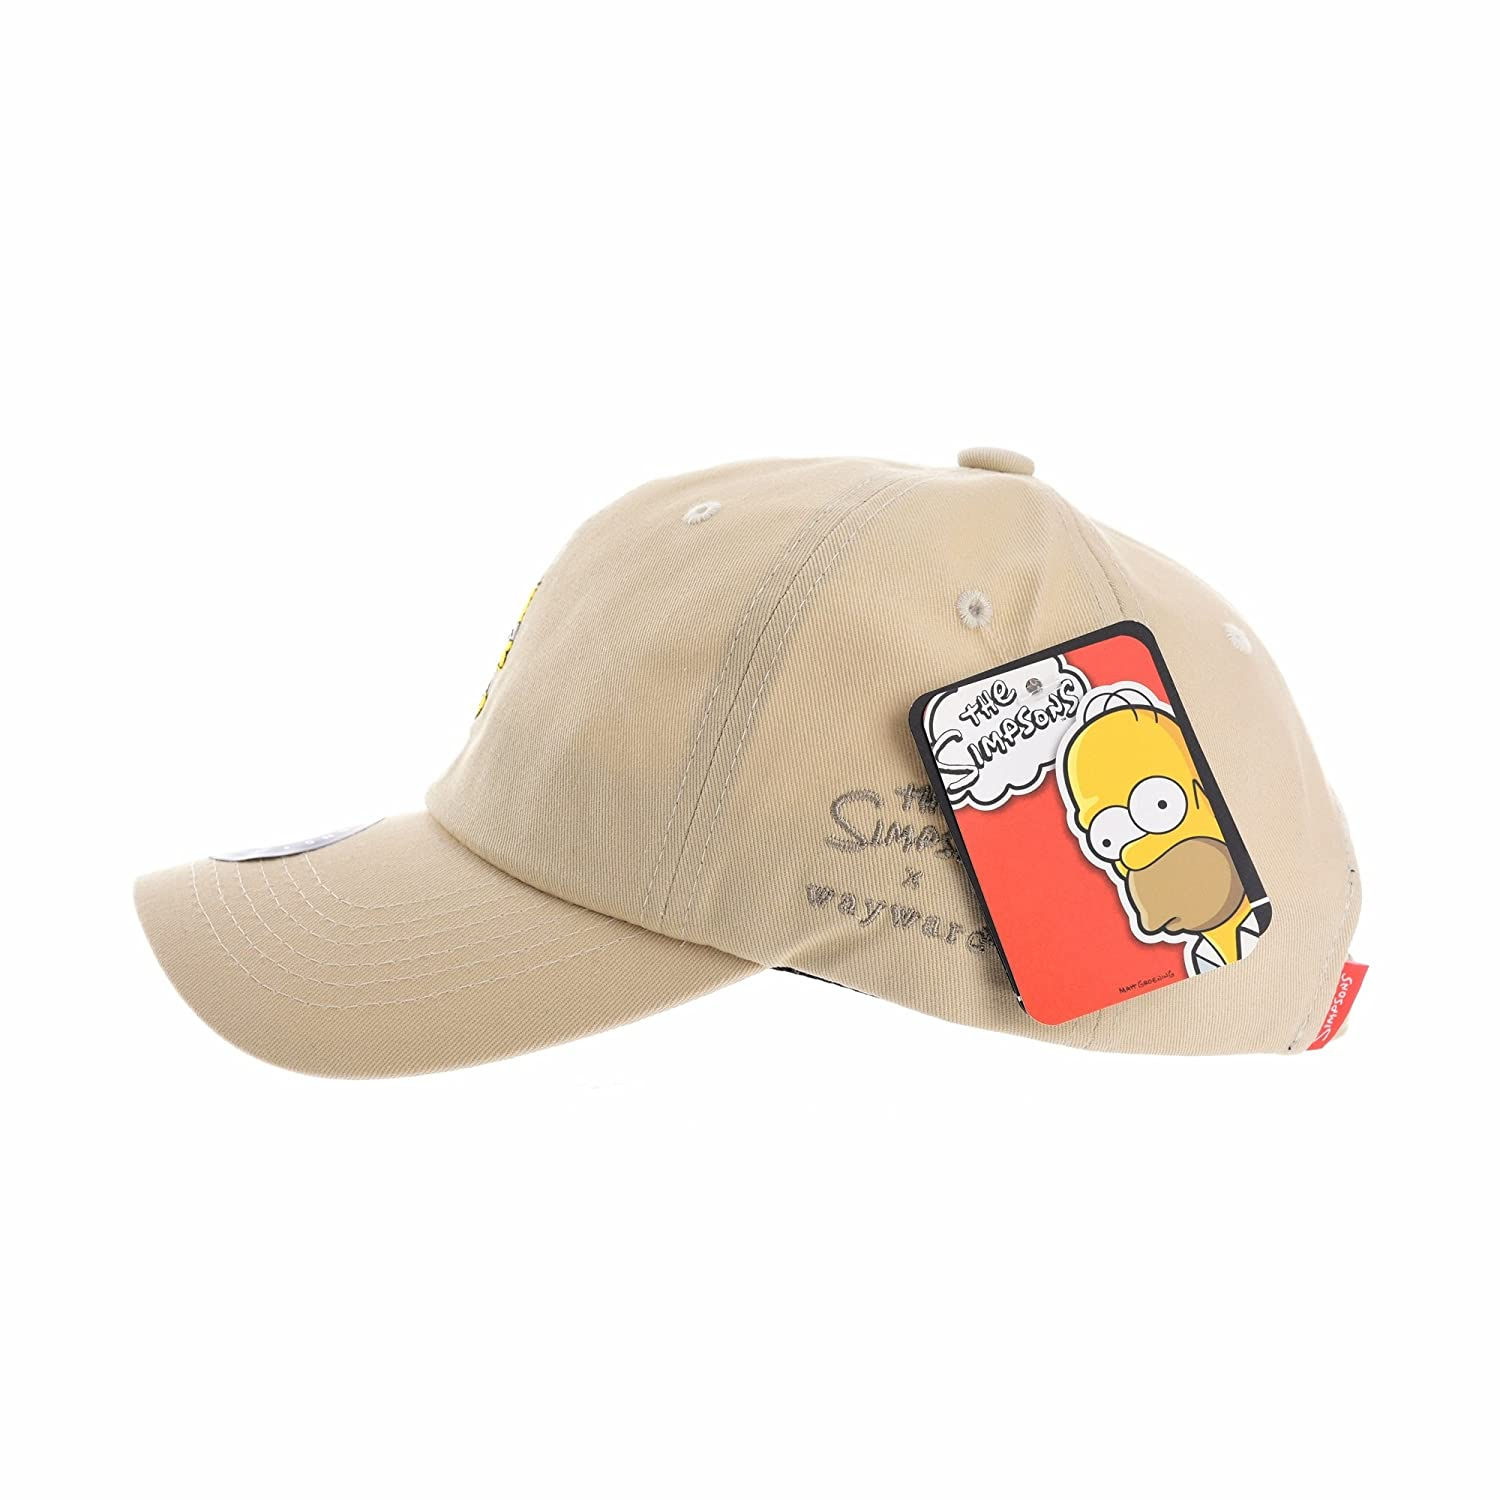 e6055def530 WITHMOONS The Simpsons Baseball Cap Crossed Bart Simpson Hat HL1867 (Beige)   Amazon.co.uk  Clothing